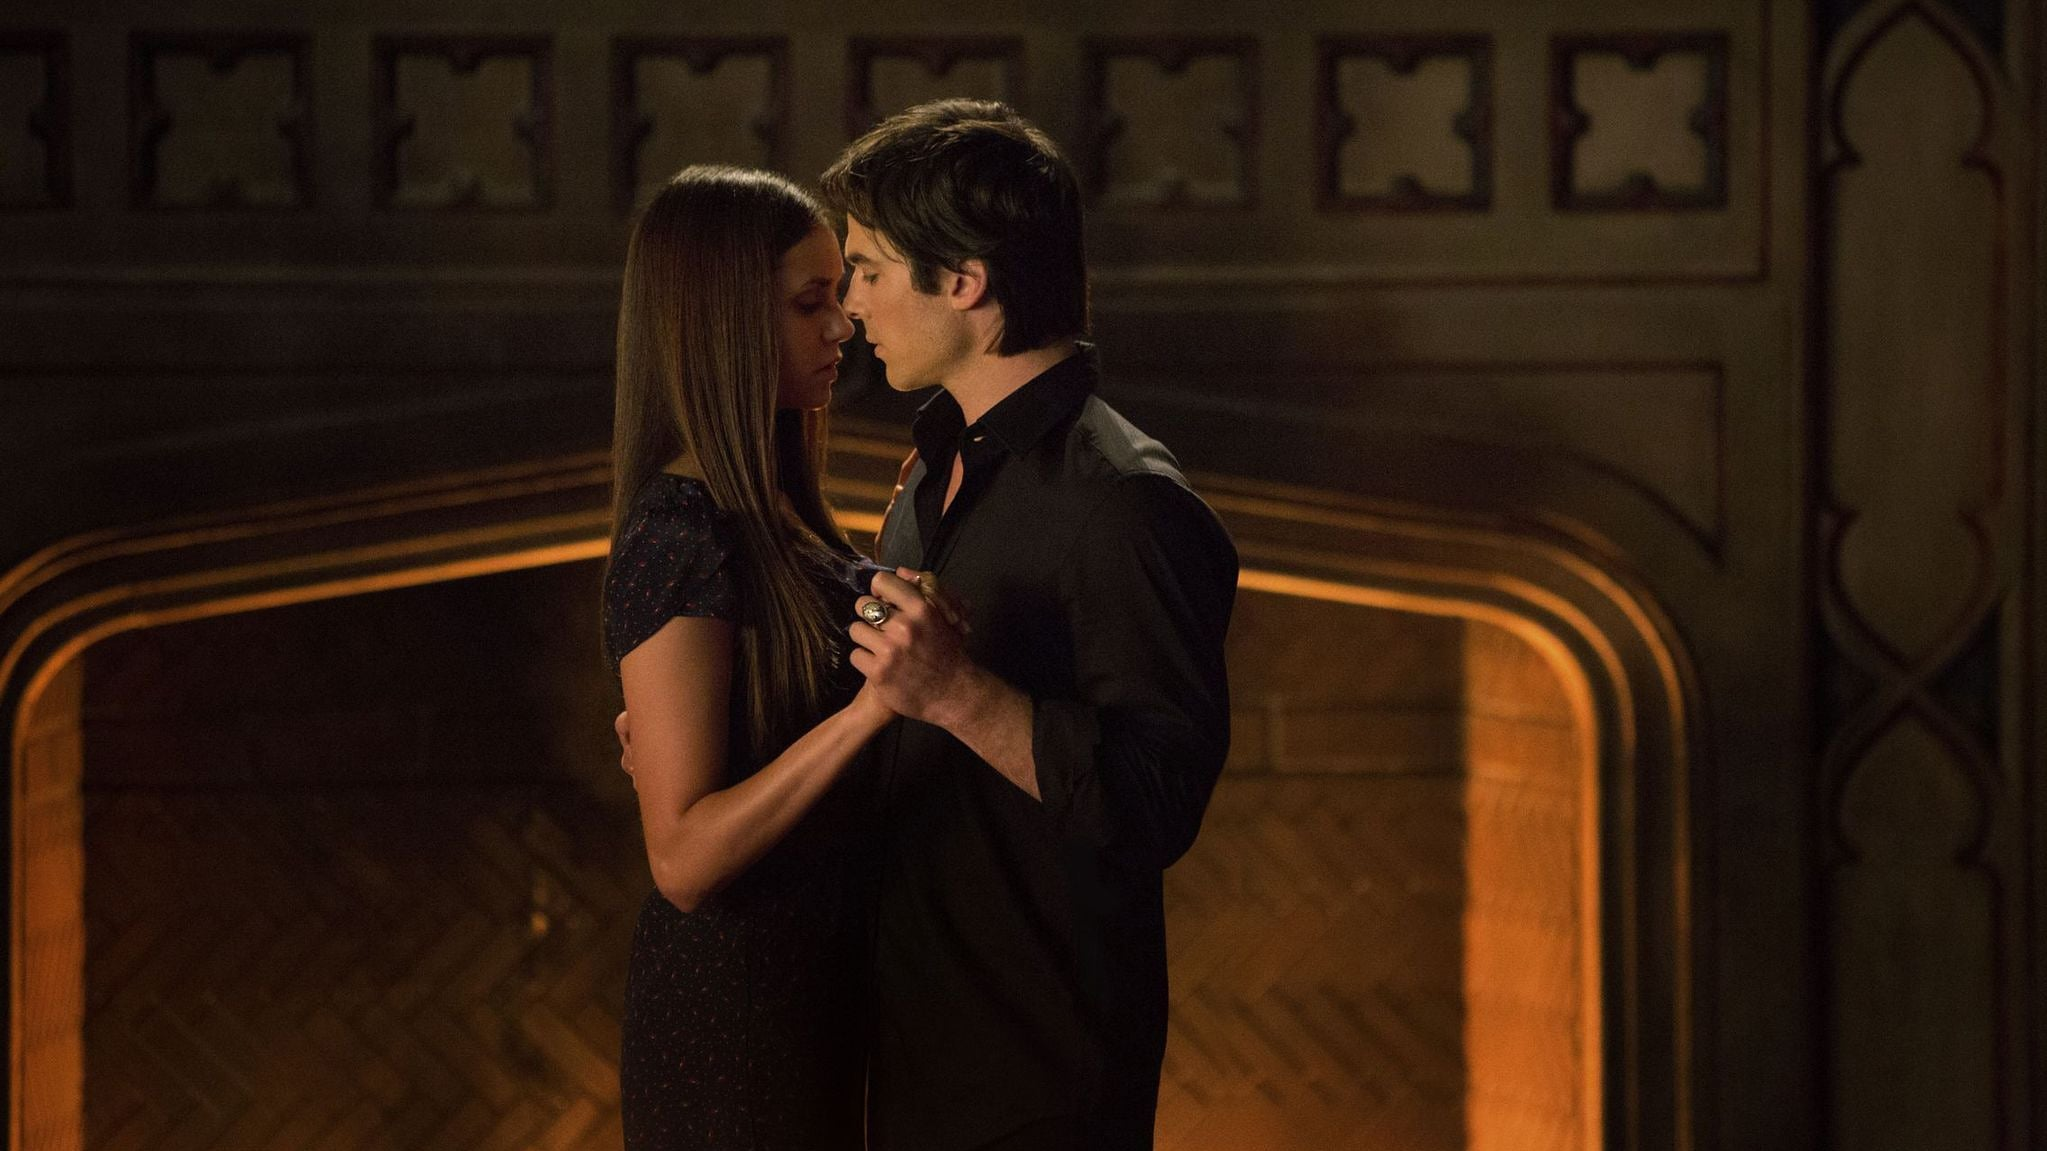 The Vampire Diaries - Season 4 Episode 7 : My Brother's Keeper